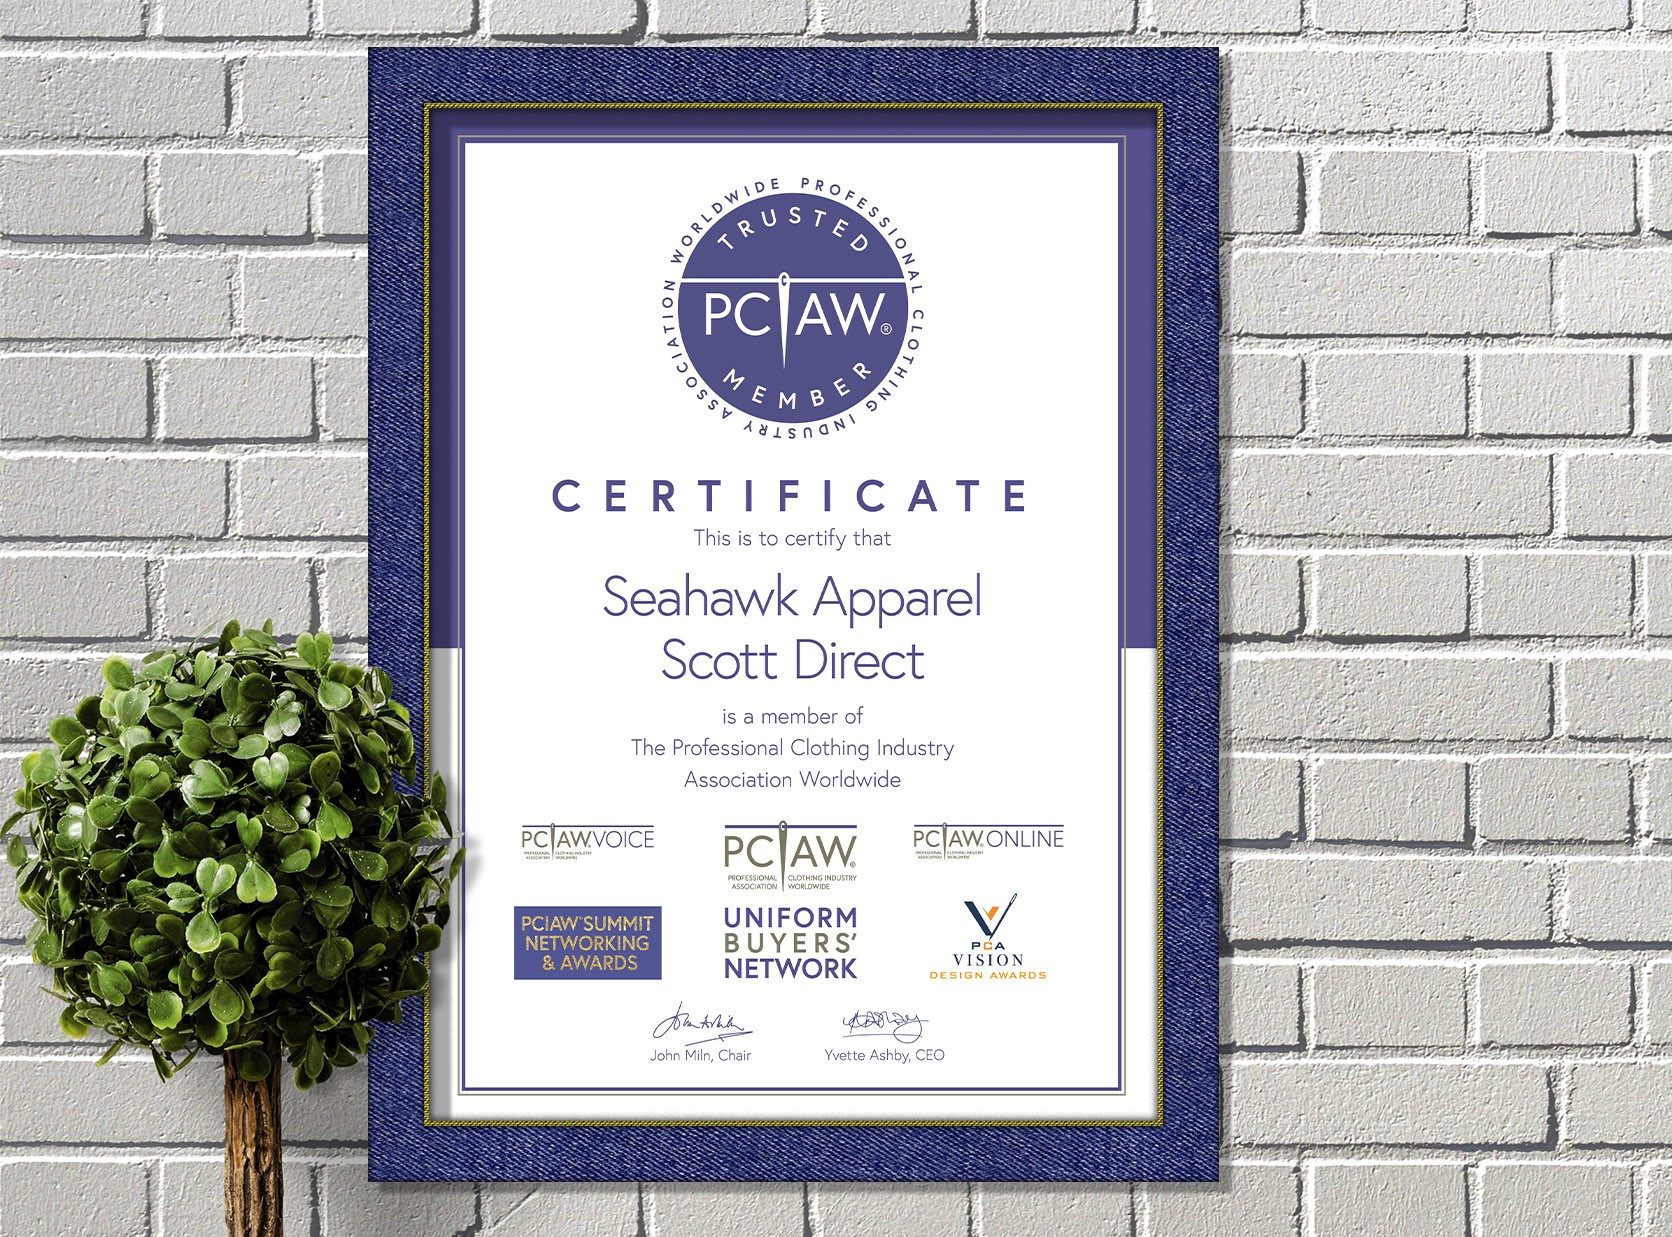 The PCIAW® is pleased to include Seahawk Apparel as a PCIAW® Trusted Member and looks forward to extending new opportunities for members across the professional clothing industry.